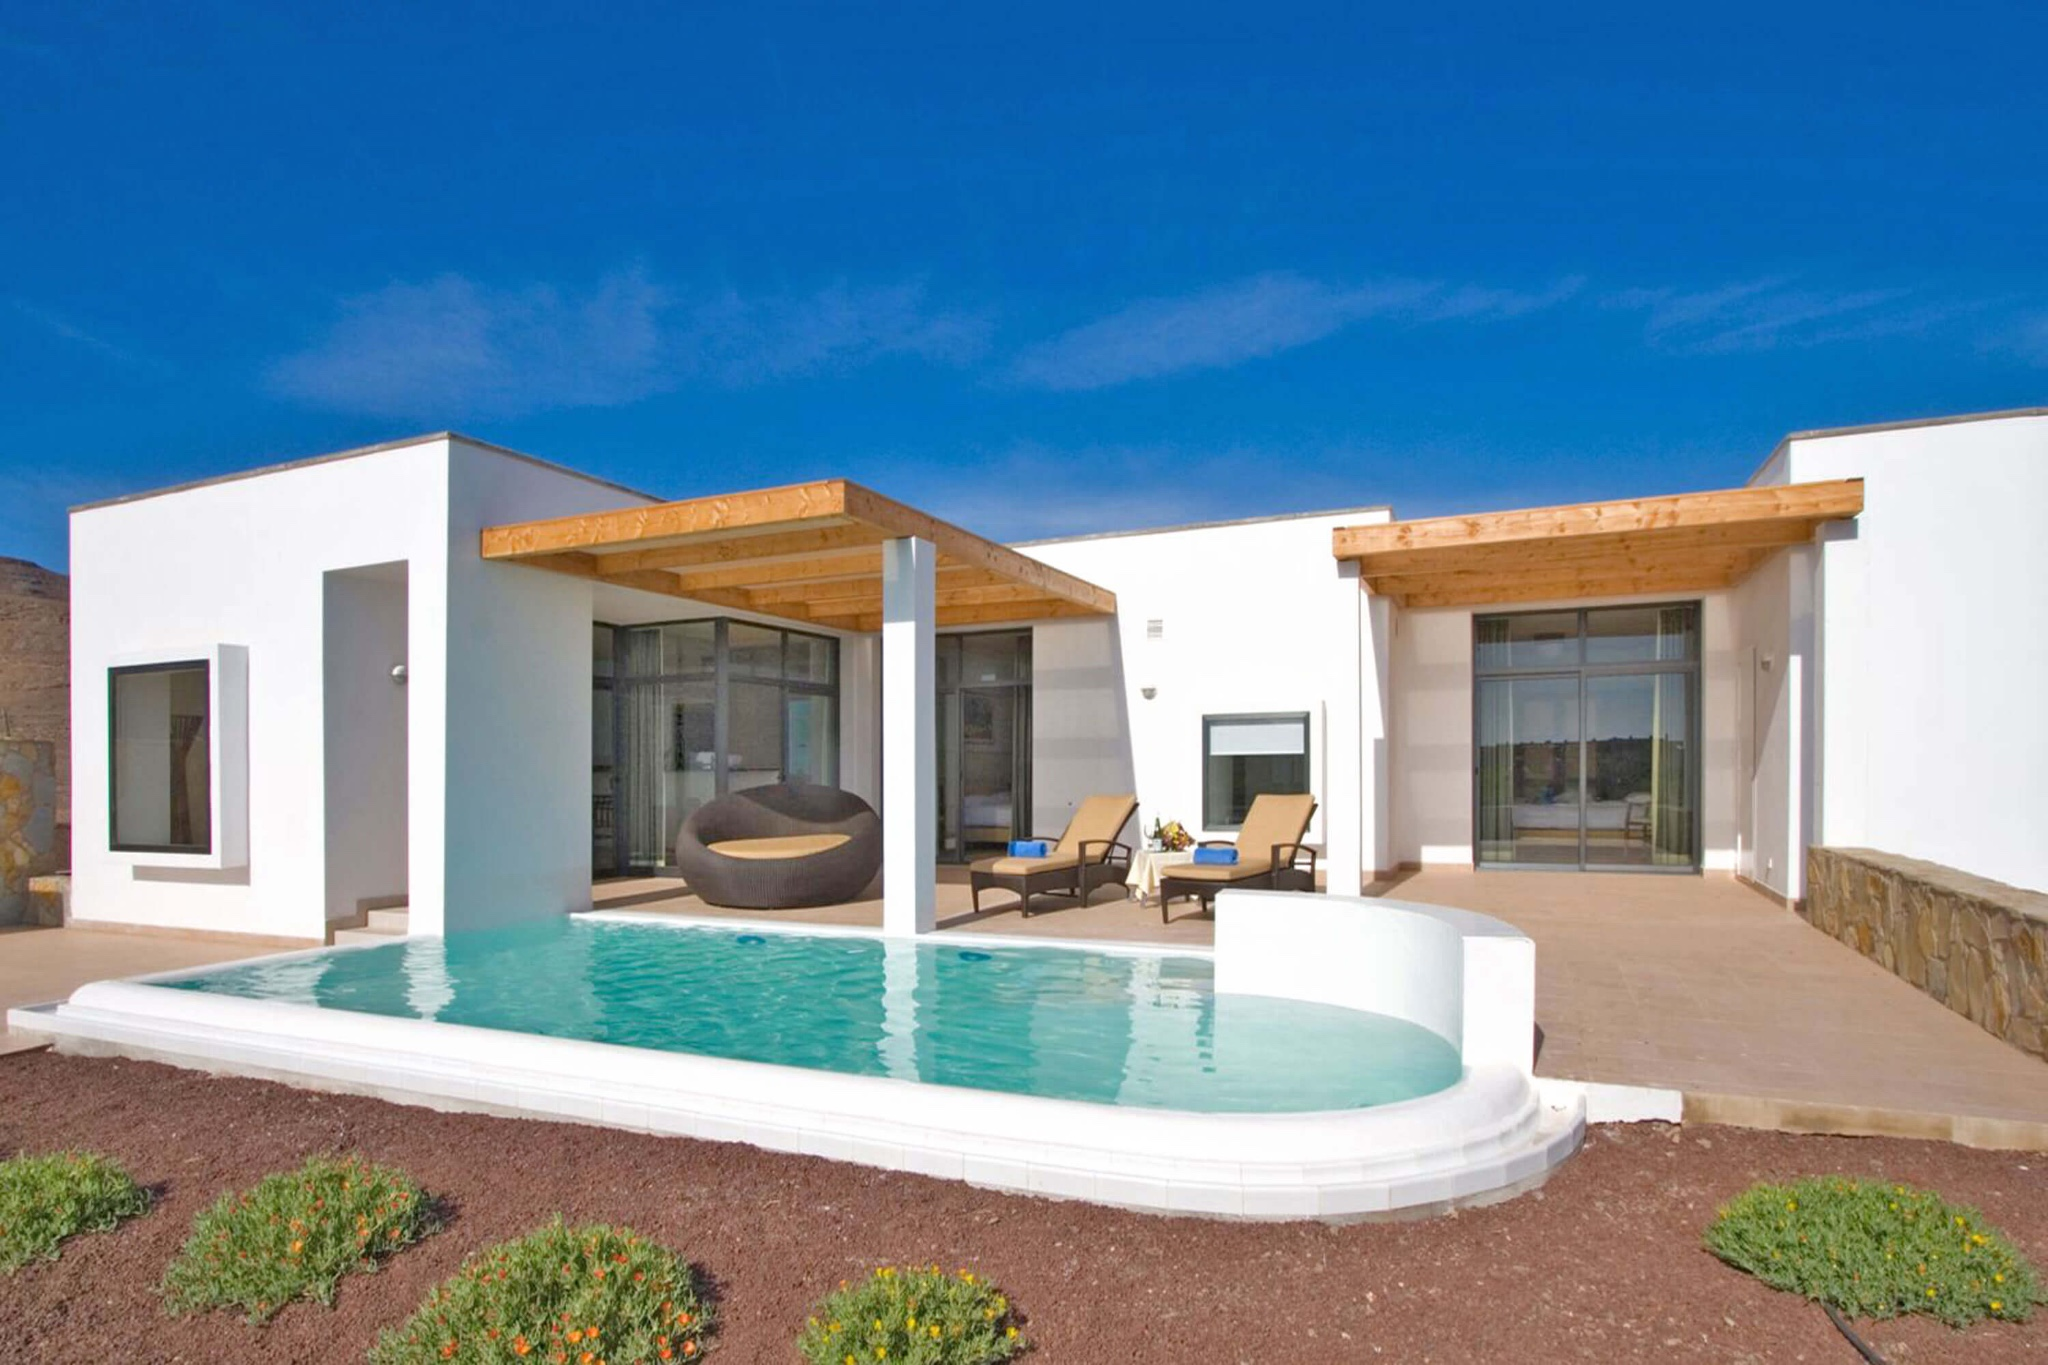 Modern villa complex on Fuerteventura in a prime location next to the golf course and close to Las Playitas beach